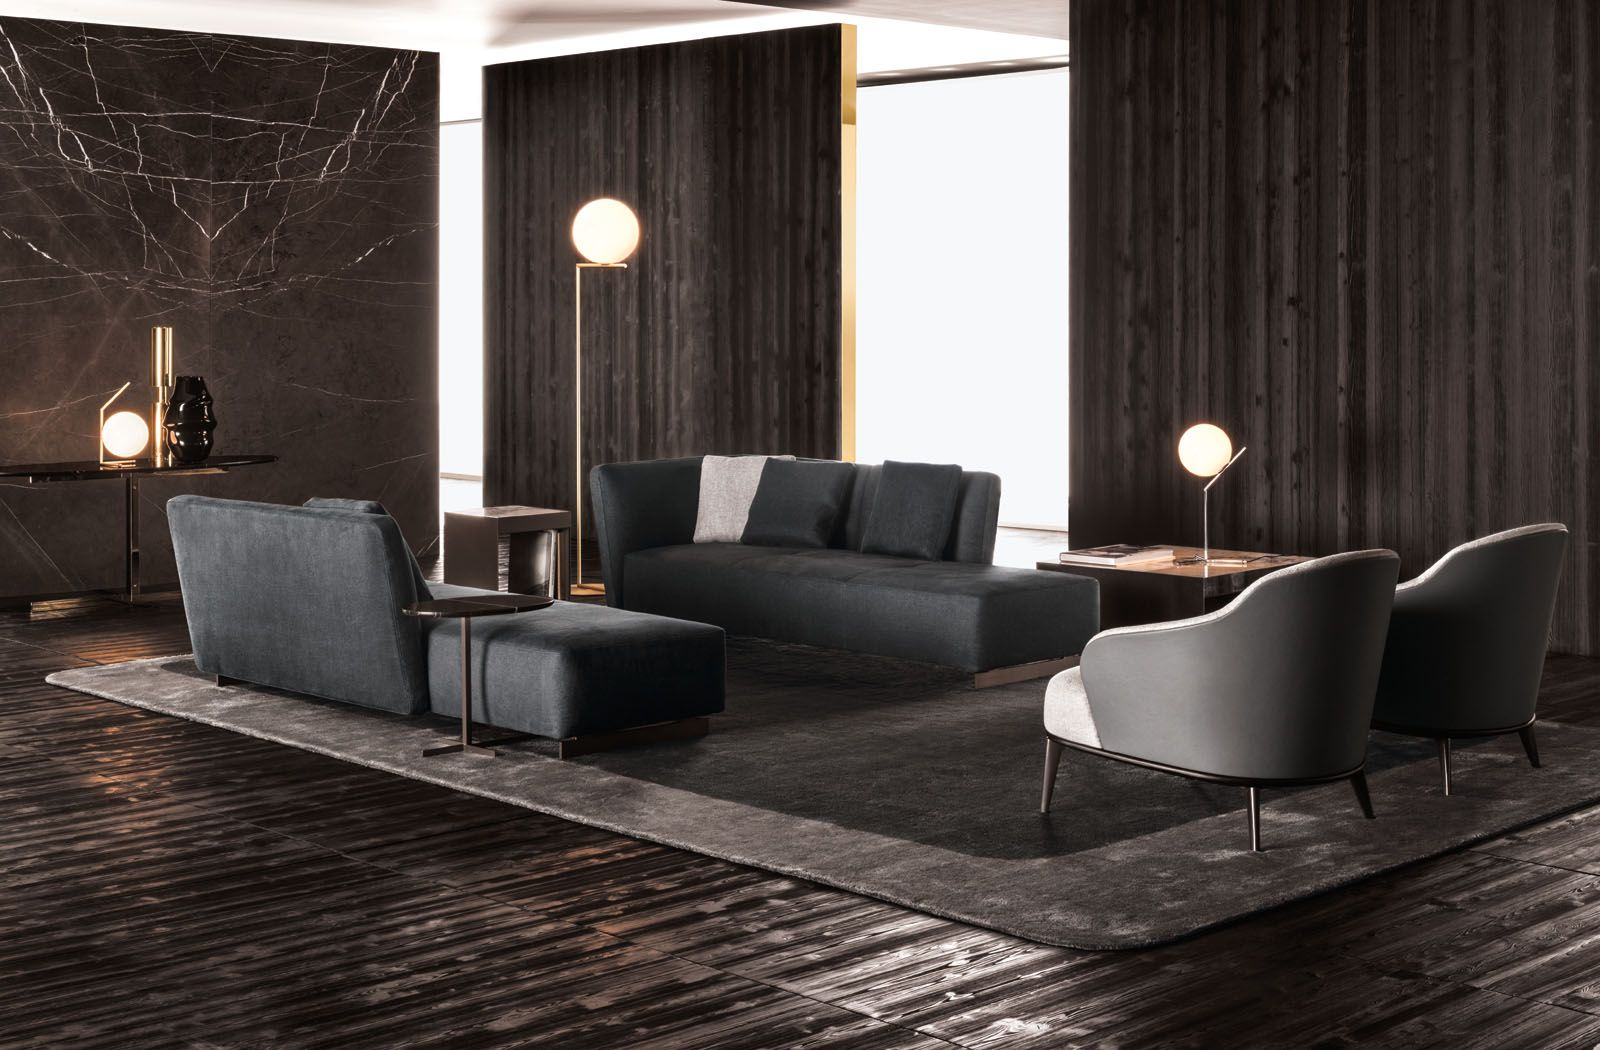 Lounge seymour seating system and leslie armchairs for Mobili italiani design